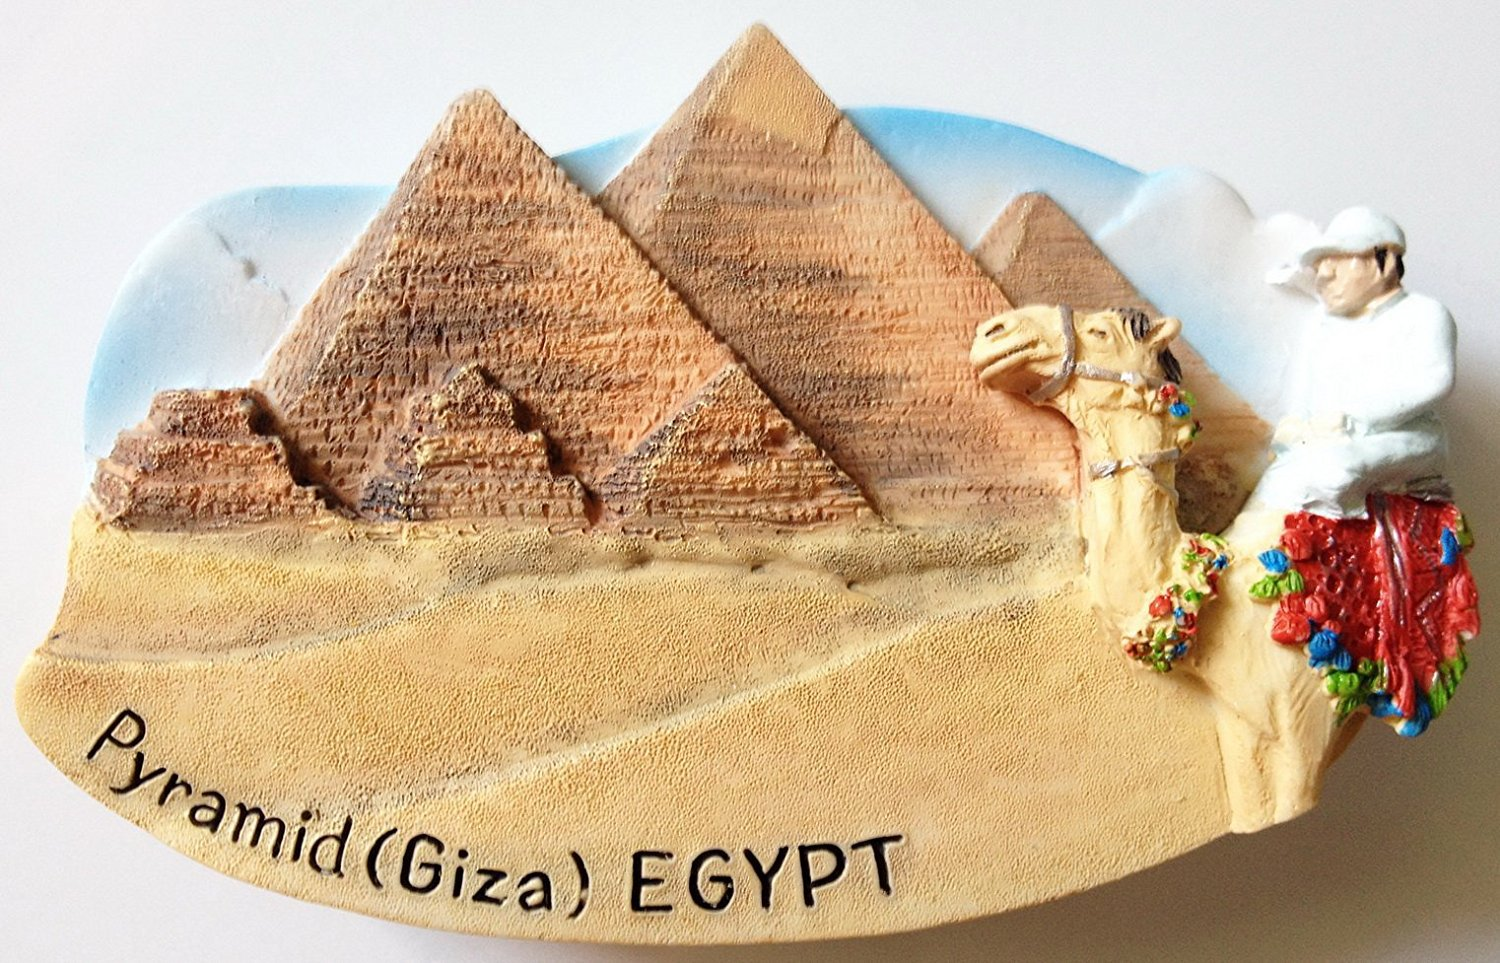 Piramid (Giza) EGYPT High Quality Resin 3D fridge magnet